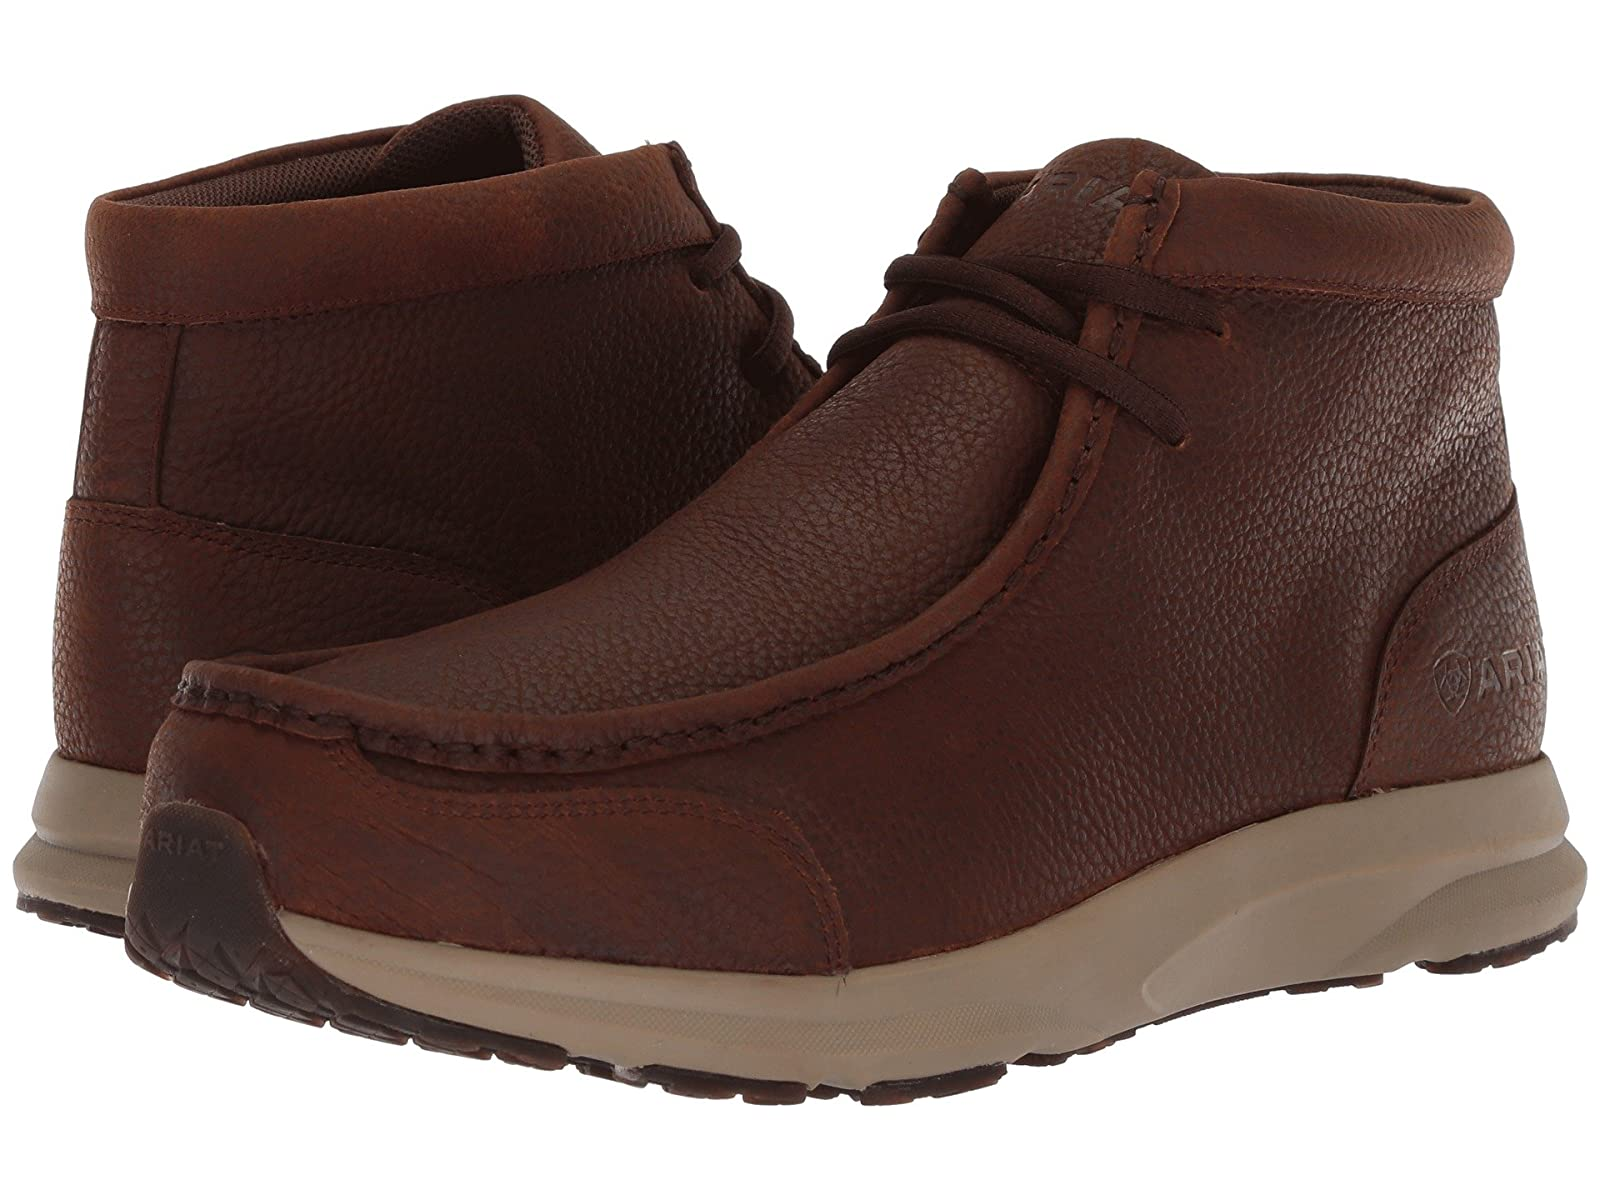 Ariat SpitfireSelling fashionable and eye-catching shoes